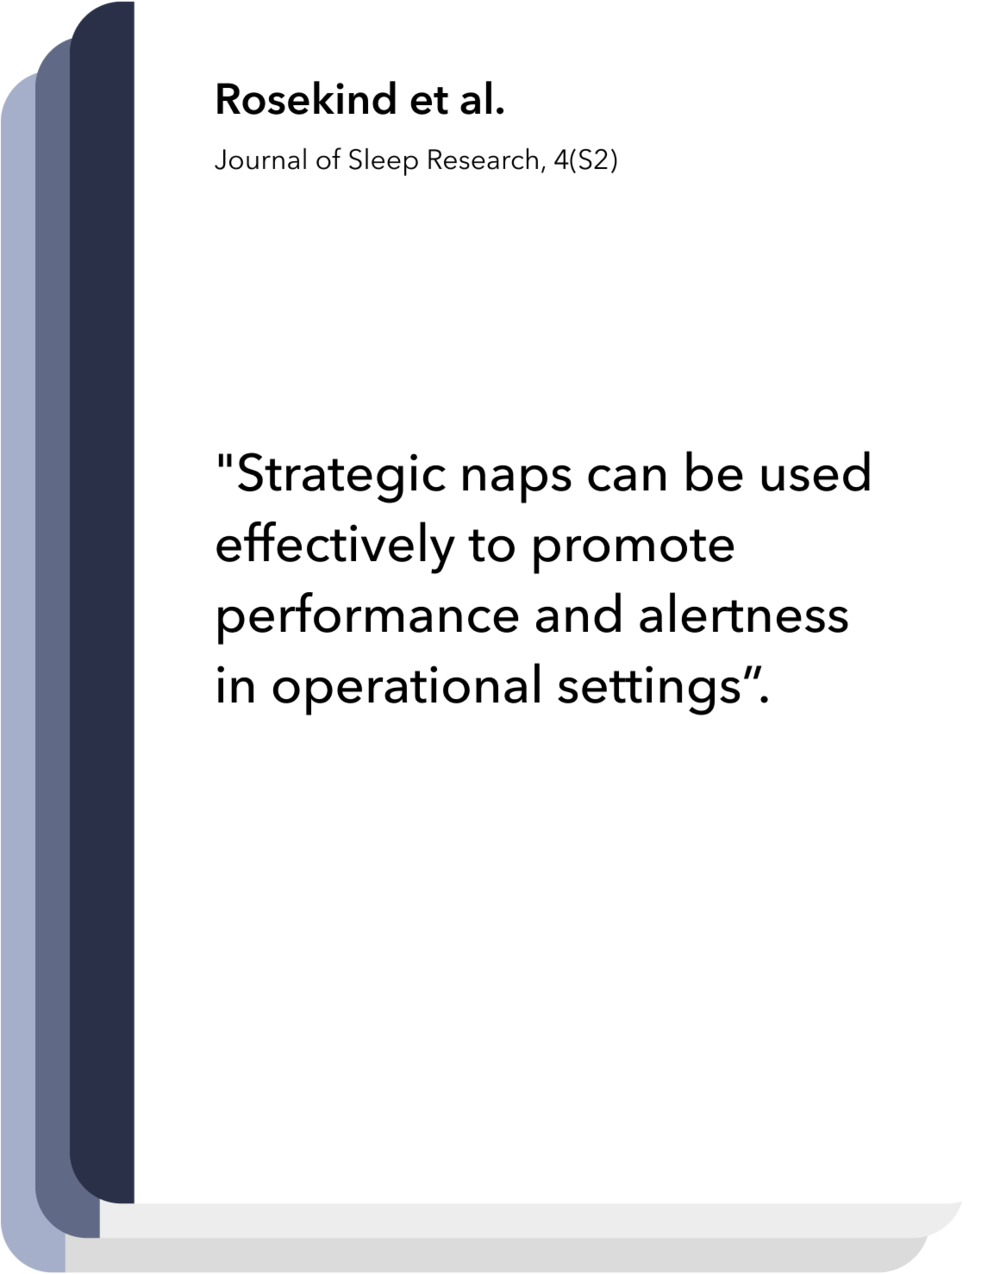 Latest research in sleep and circadian neuroscience: Sleep